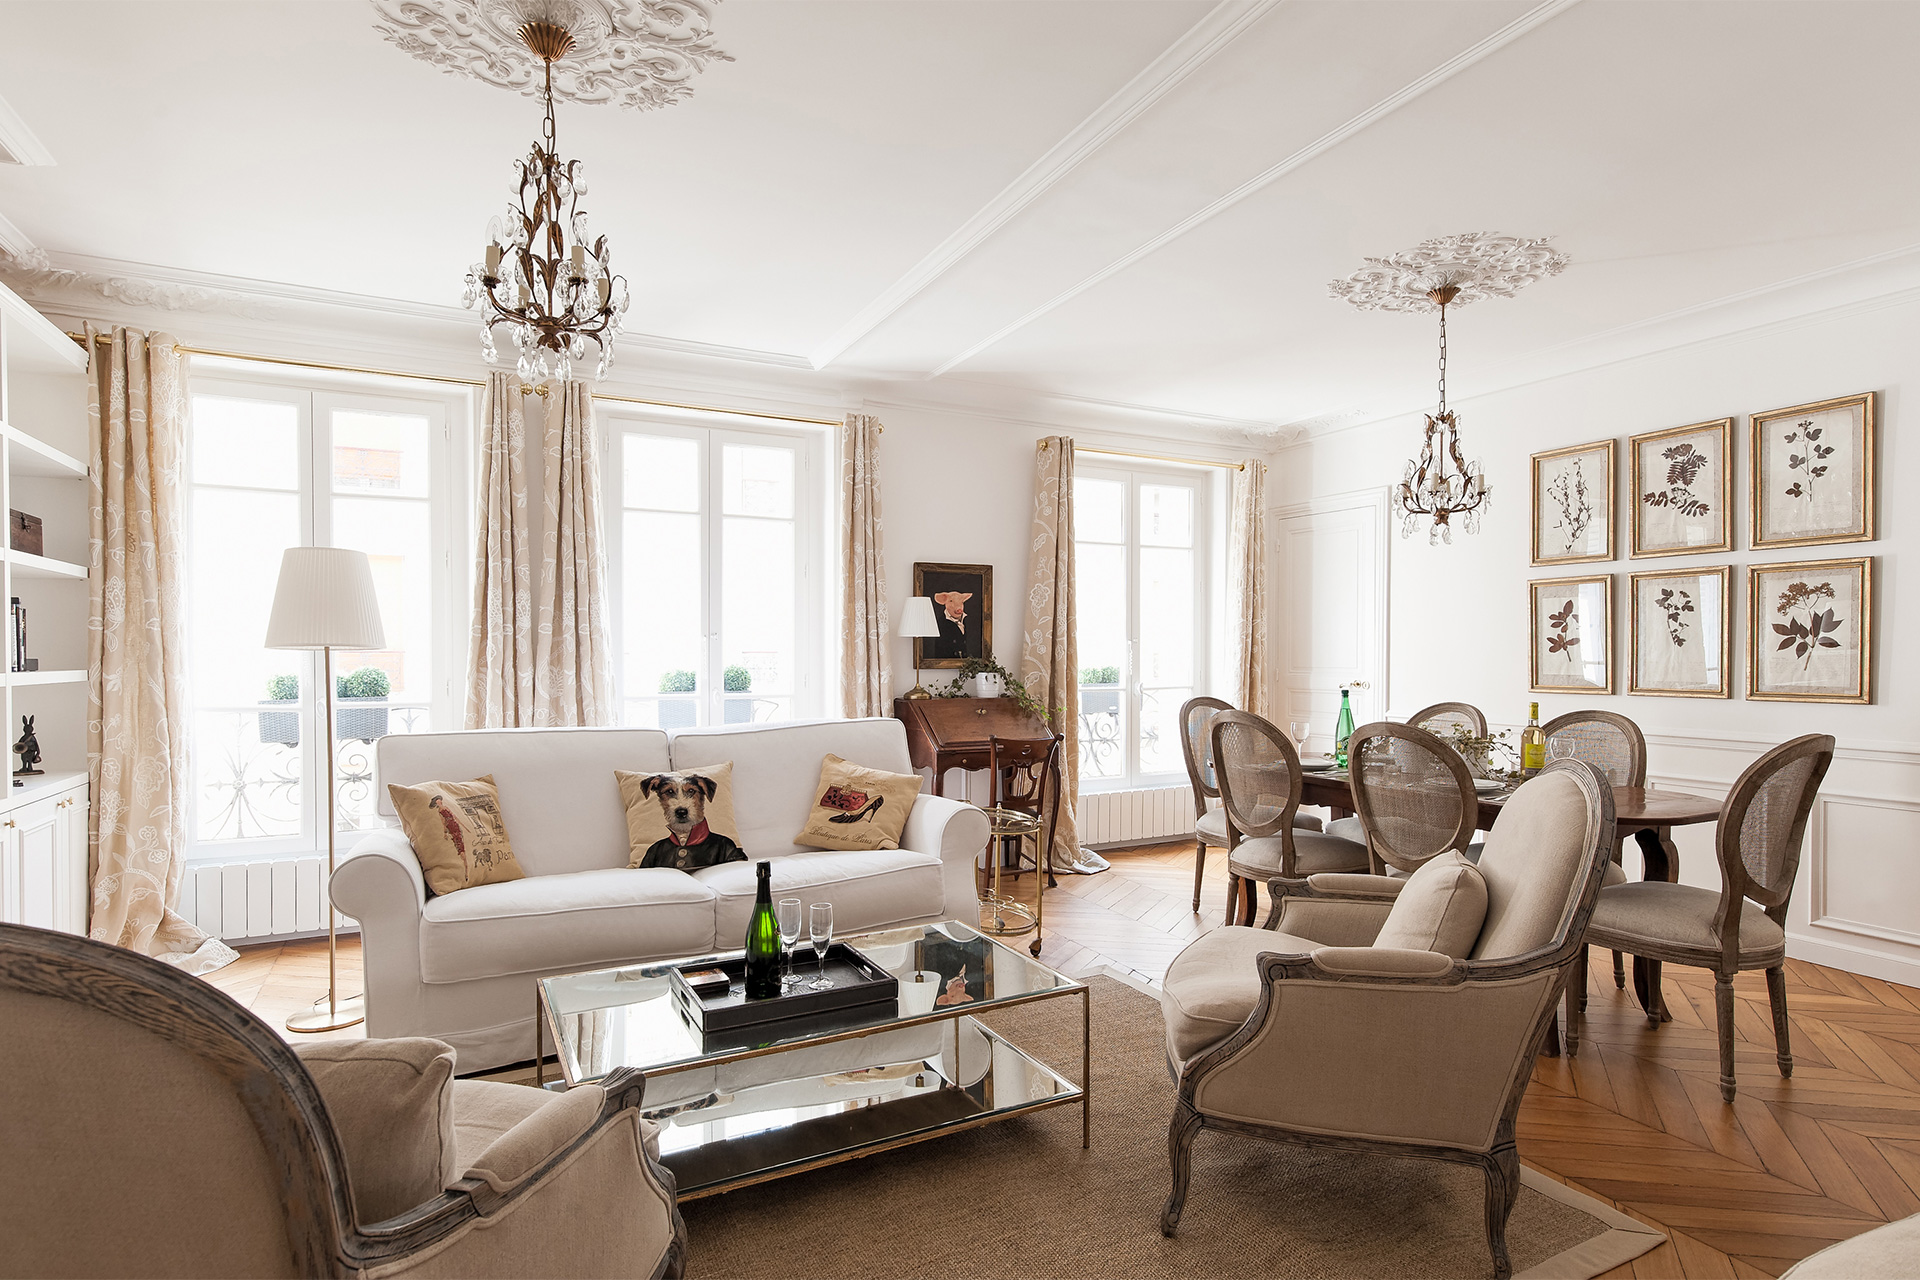 Living room and dining room of the Montagny vacation rental offered by Paris Perfect